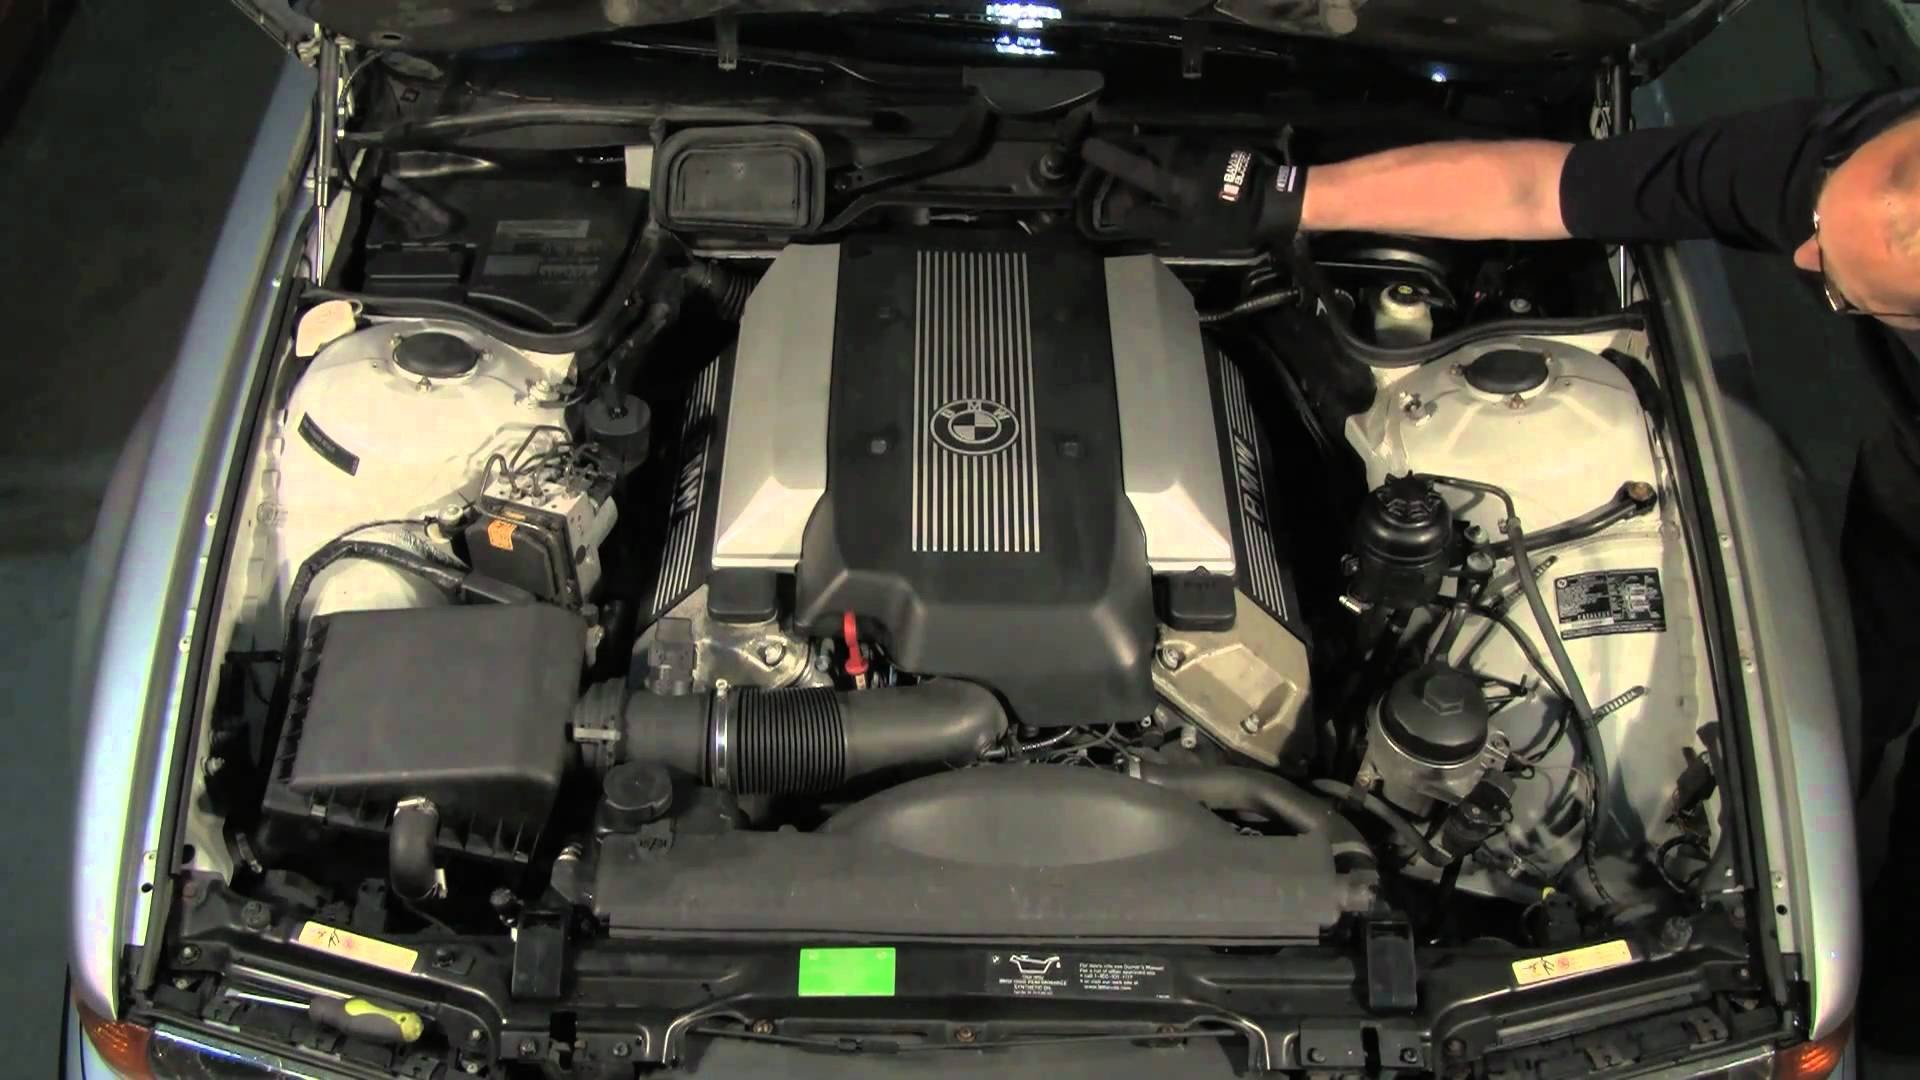 Bmw 540i Engine Diagram M62 Wikiwand My Wiring Under The Hood A 7 Series 95 Thru 01 E38 Of